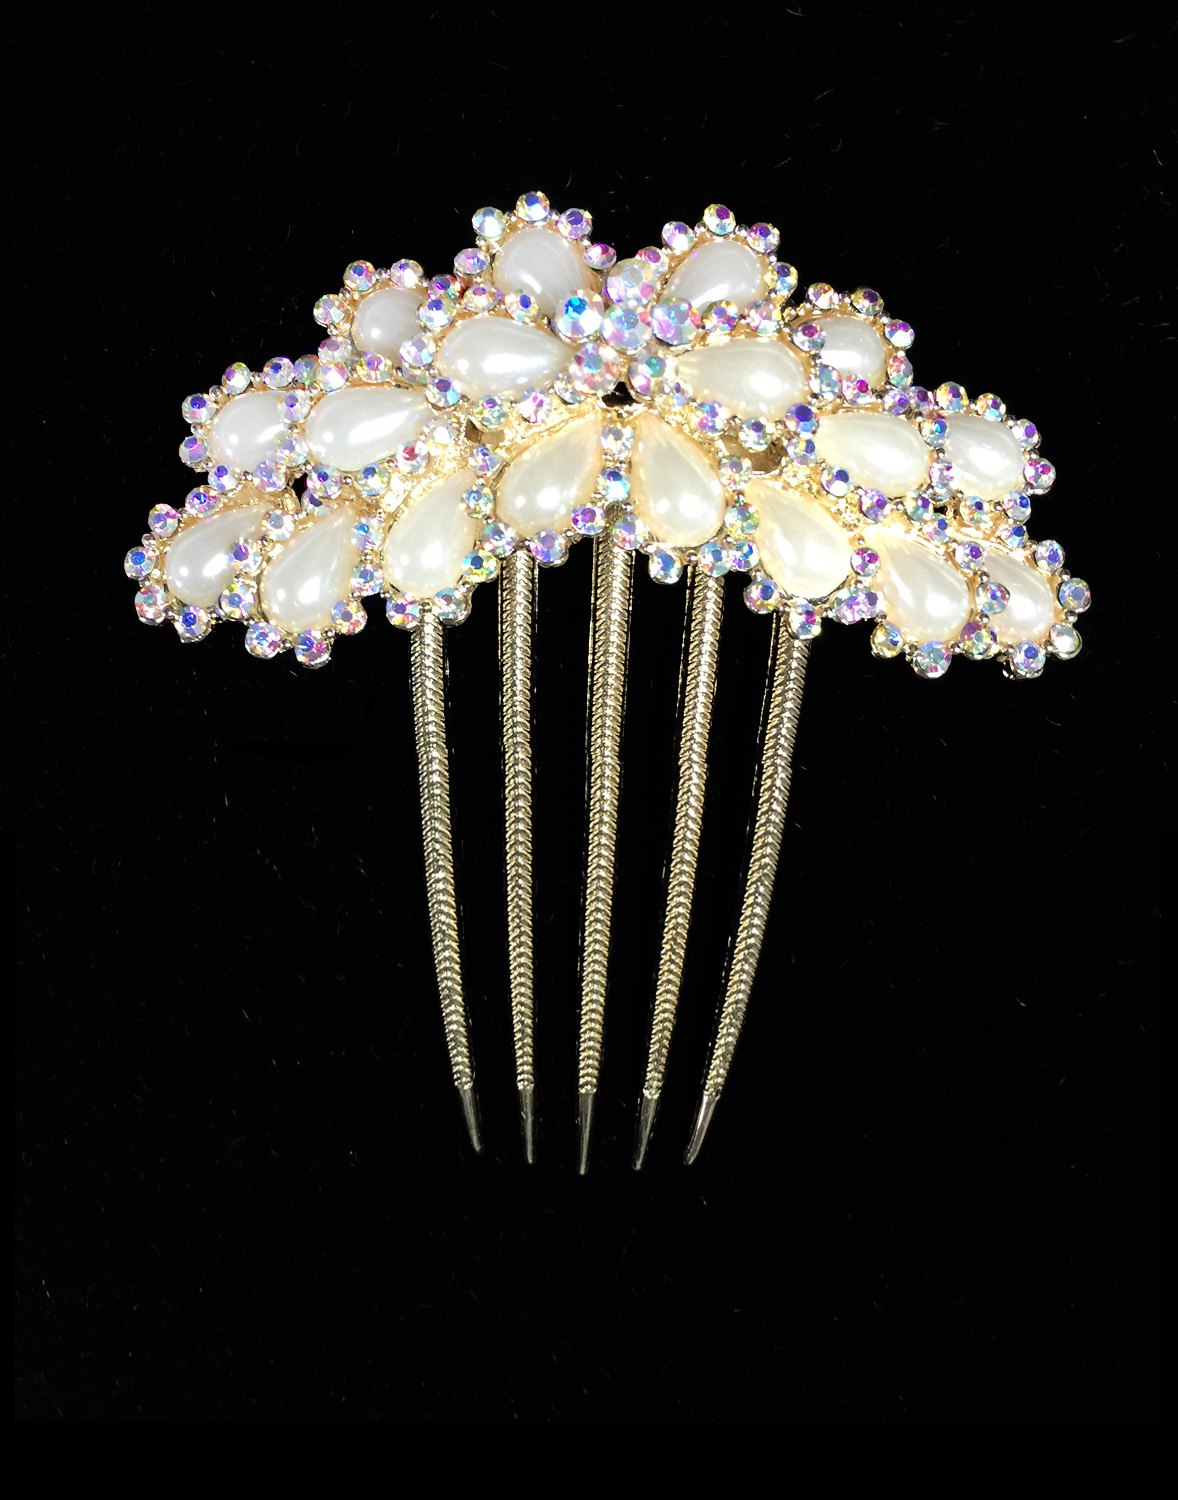 Pearls & Crystal Rhinestones Flower Hair Comb Gold